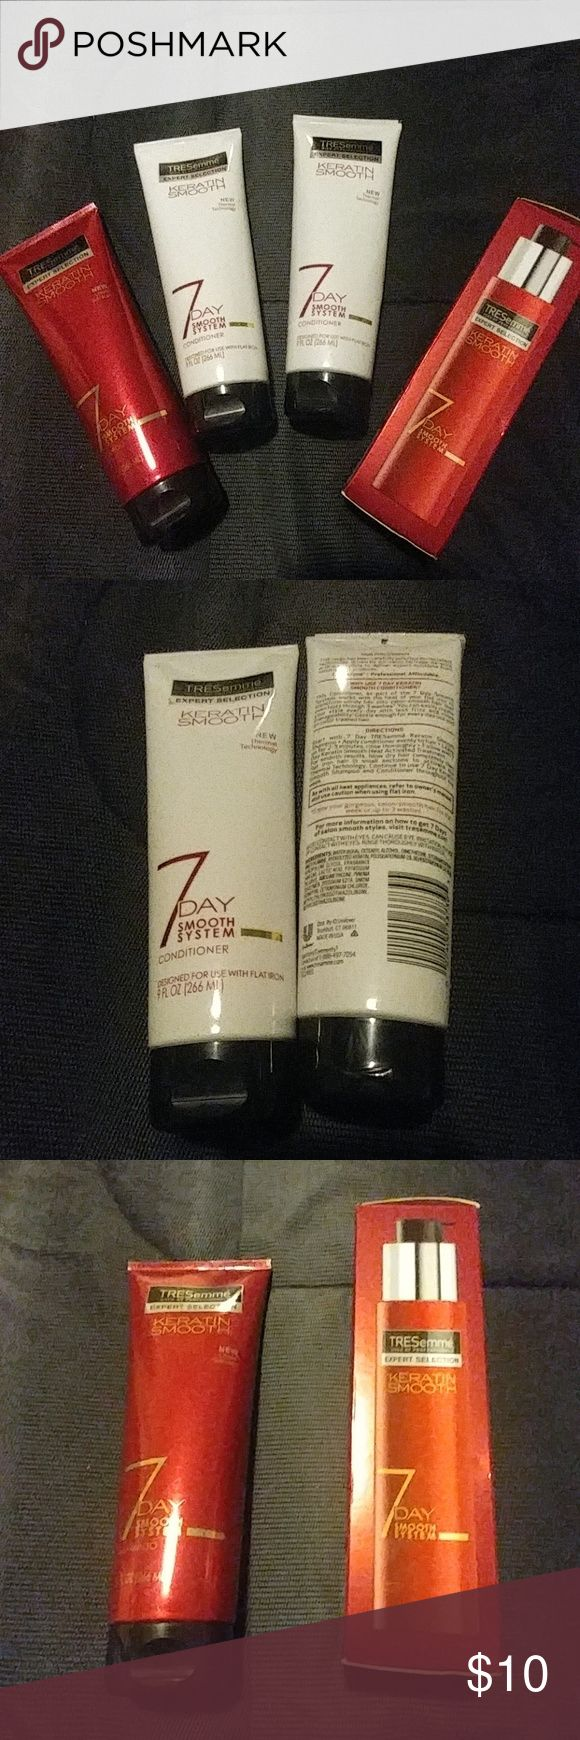 Tresemme Hair Products Tresemme Keratin Smooth Conditoner, shampoo and heat activated treatment. Productions were never used but was opened to smell. Ask any questions. Tresemme Other